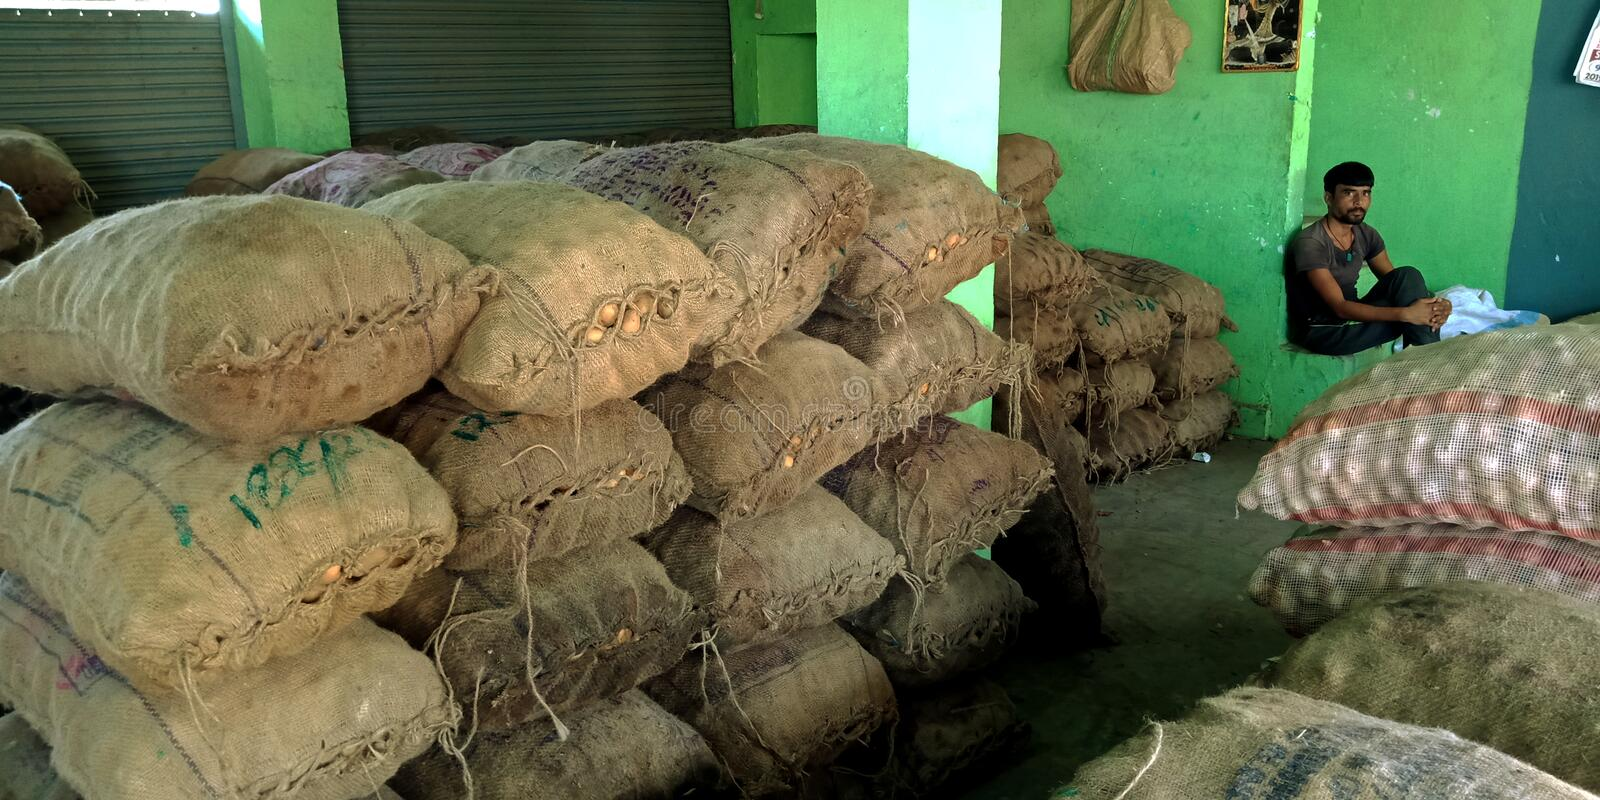 Agriculture produce potato wholesale store at Indian village farmers market. Vegetable, container, loaded, truck, crowd, goods, area, vendor, measuring royalty free stock image